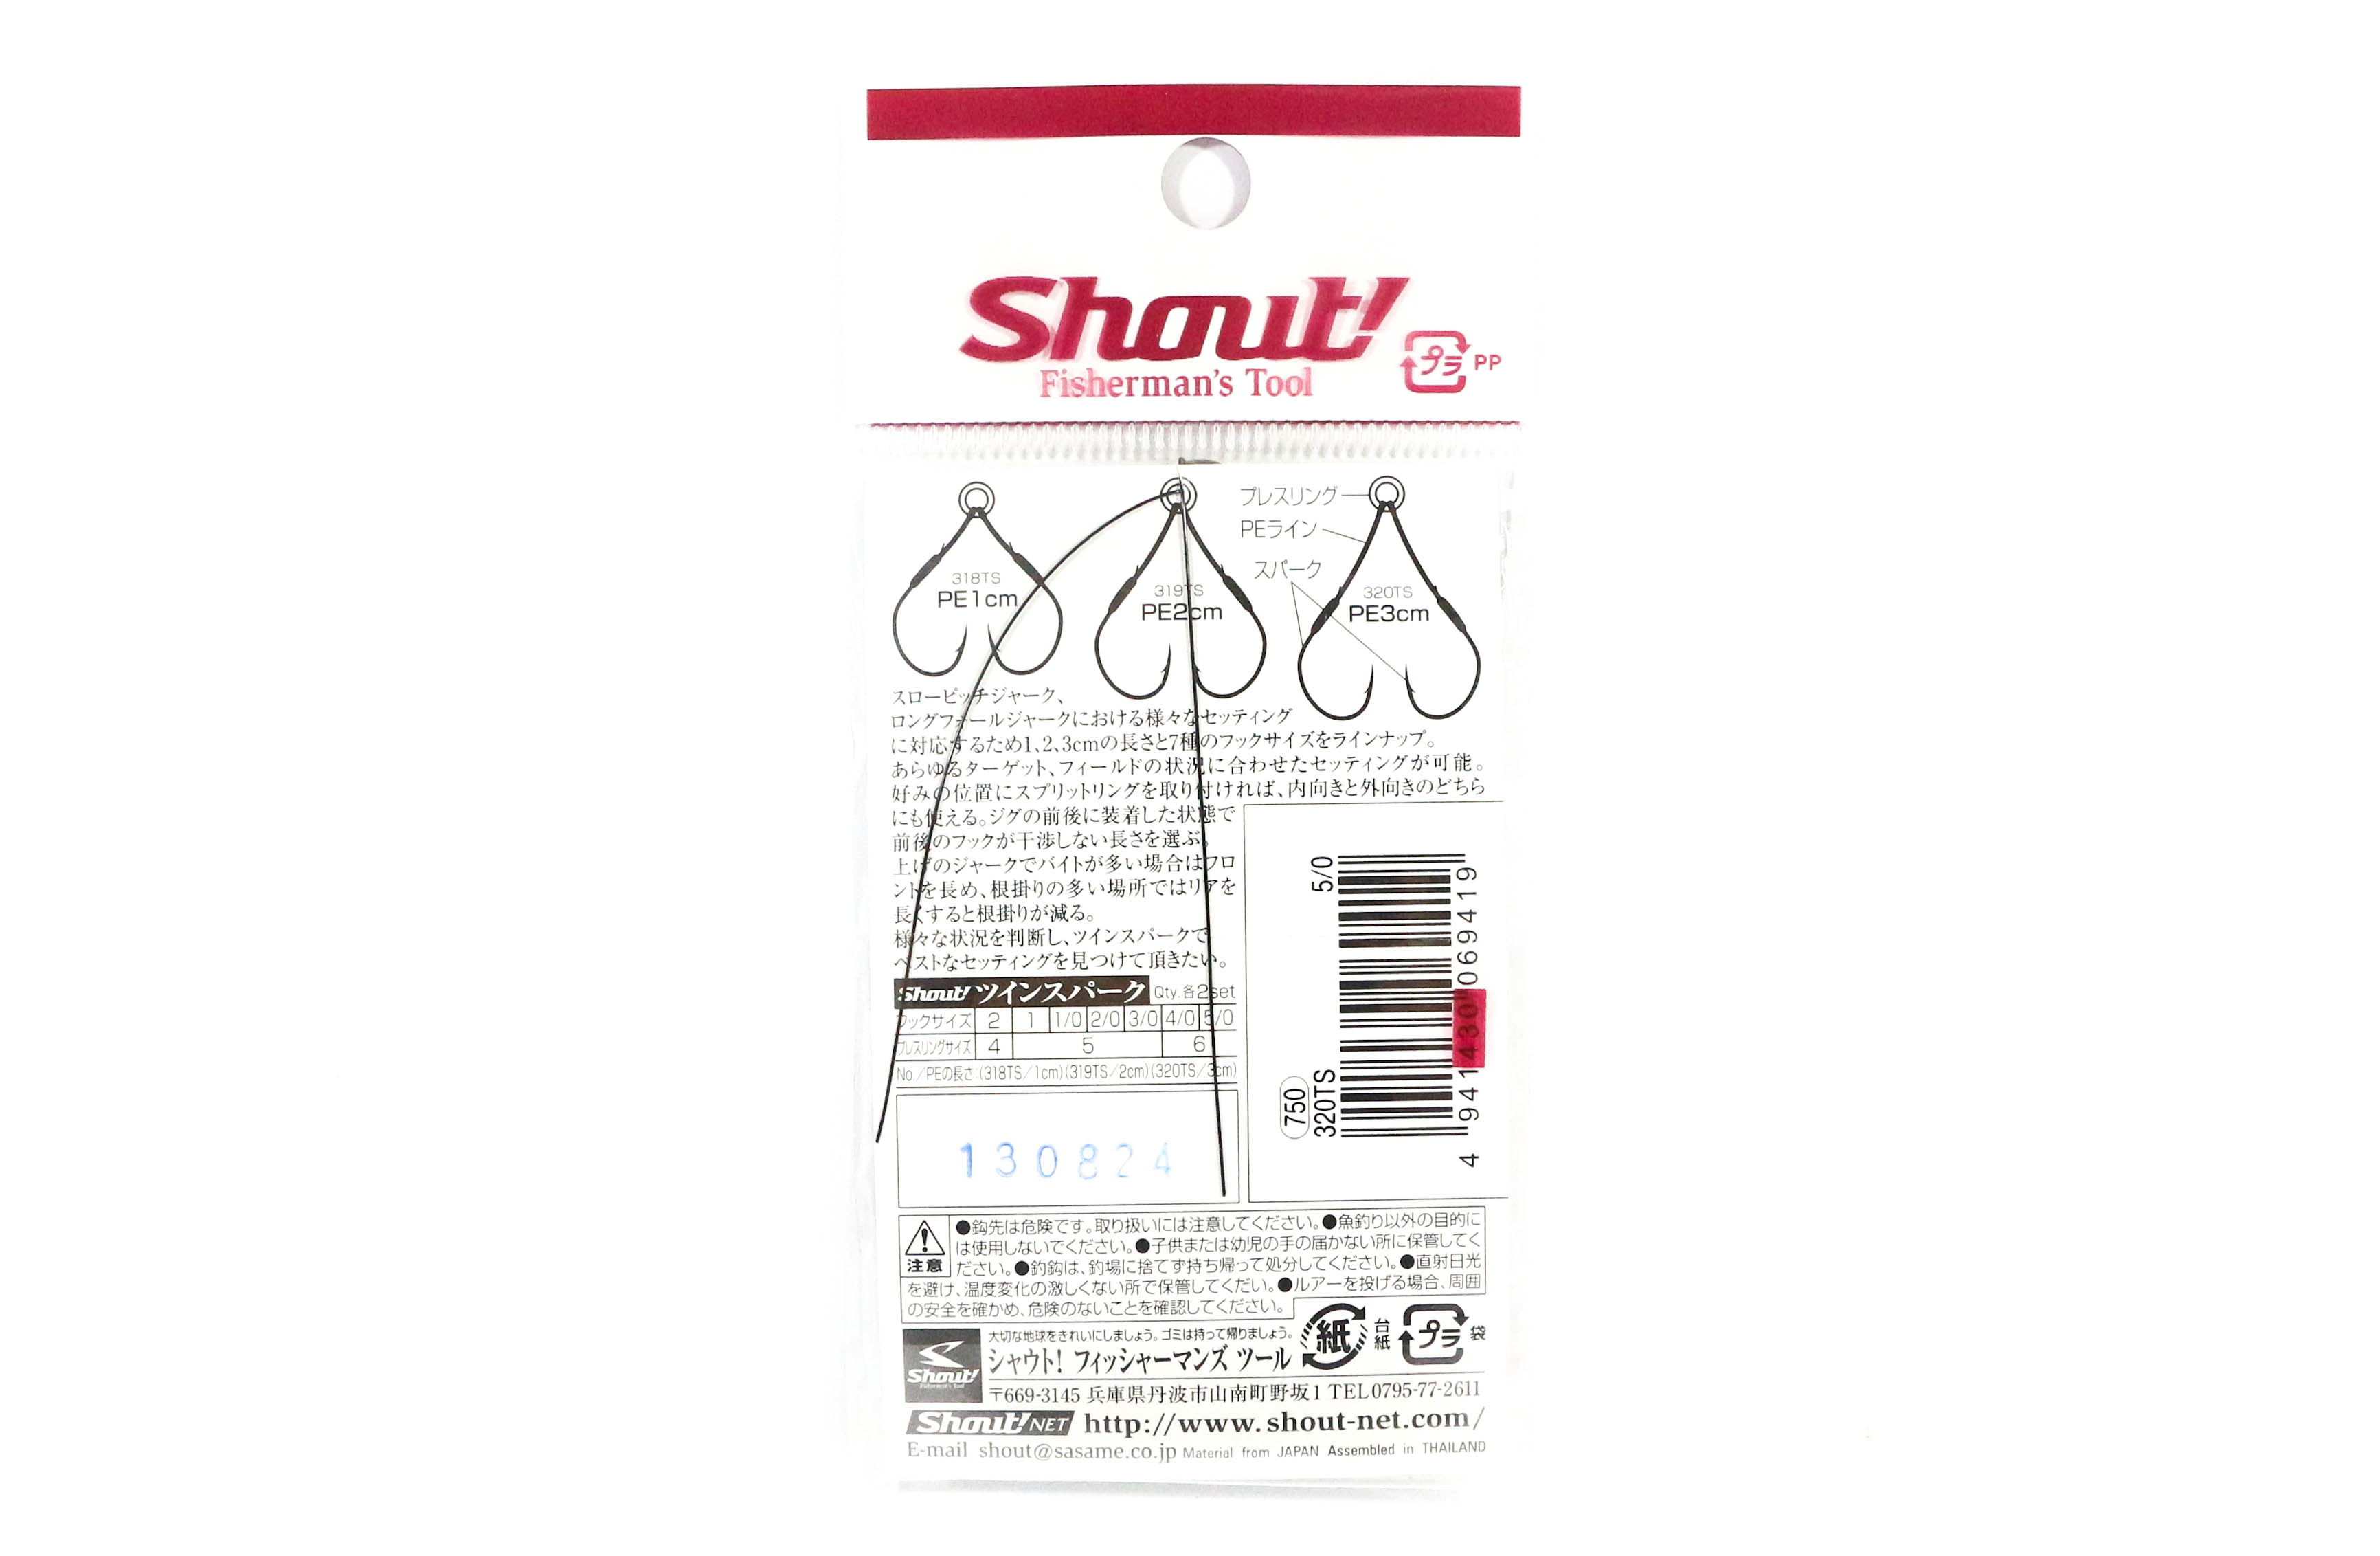 Shout 319-TS Twin Spark Rigged Assist Hooks 2cm Size 4//0 9334